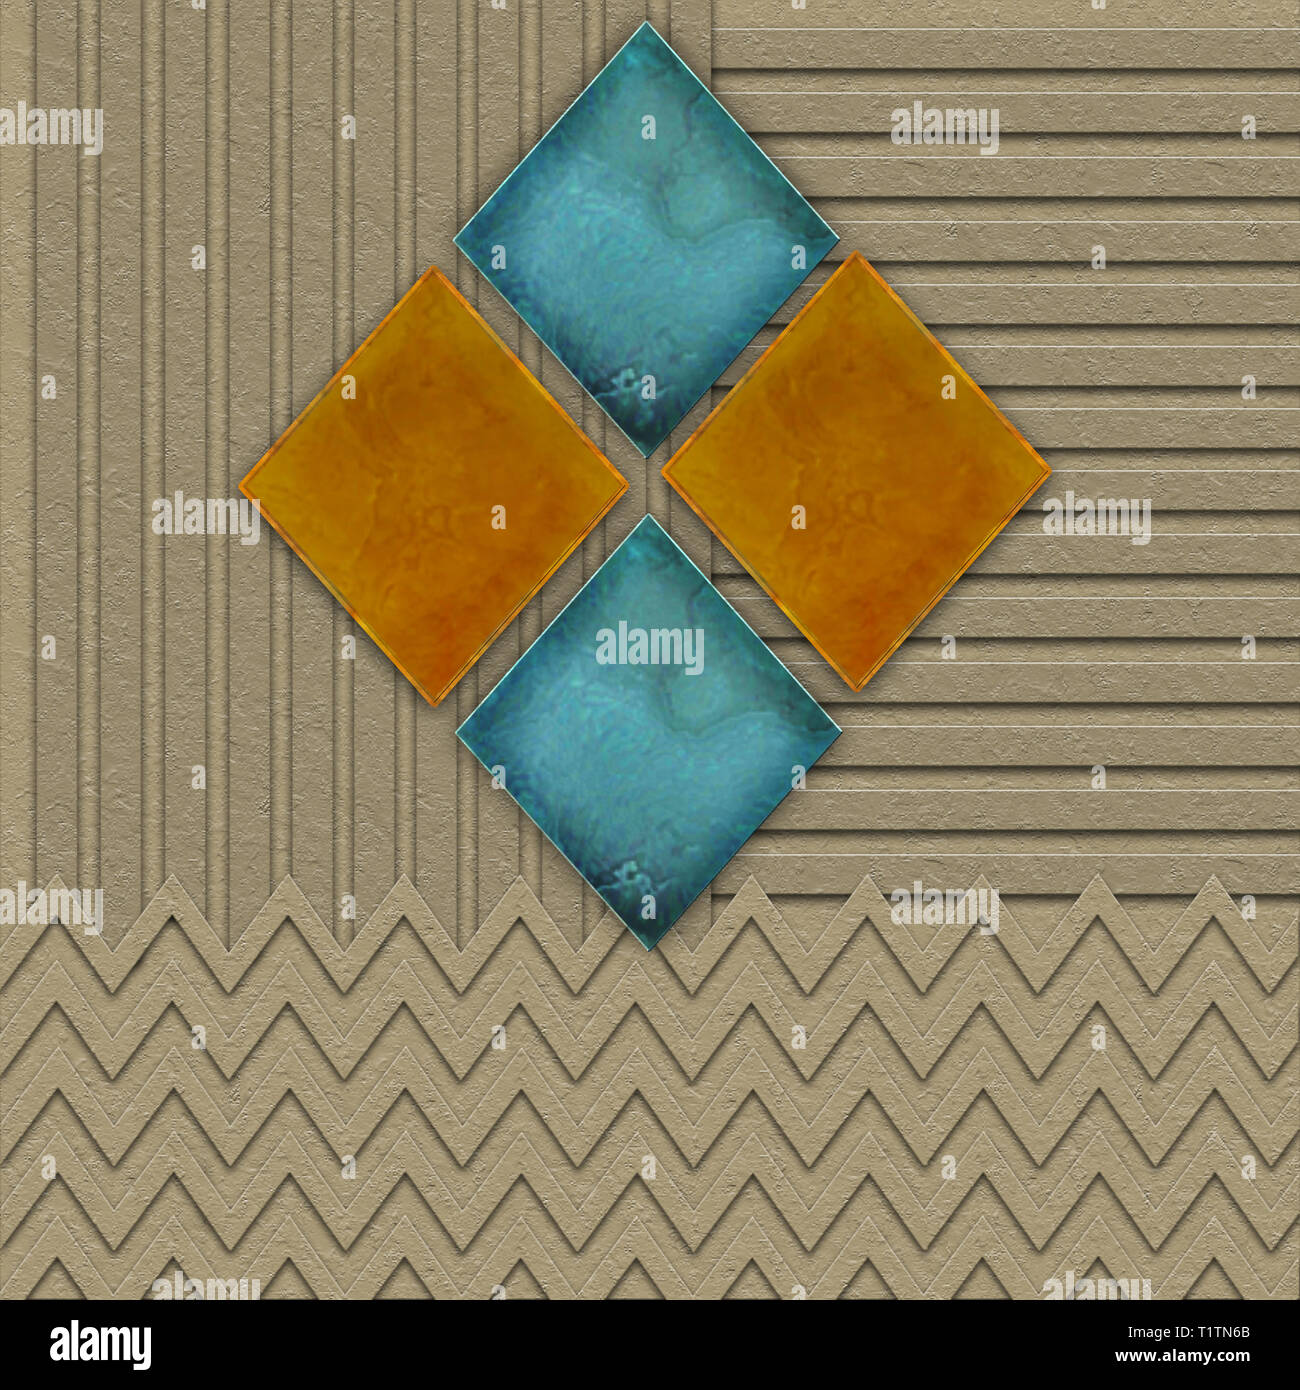 Geometric Graphic Background in brown tones with textured effects.  Marble-like Diamond shapes in turquoise blue and orange. - Stock Image